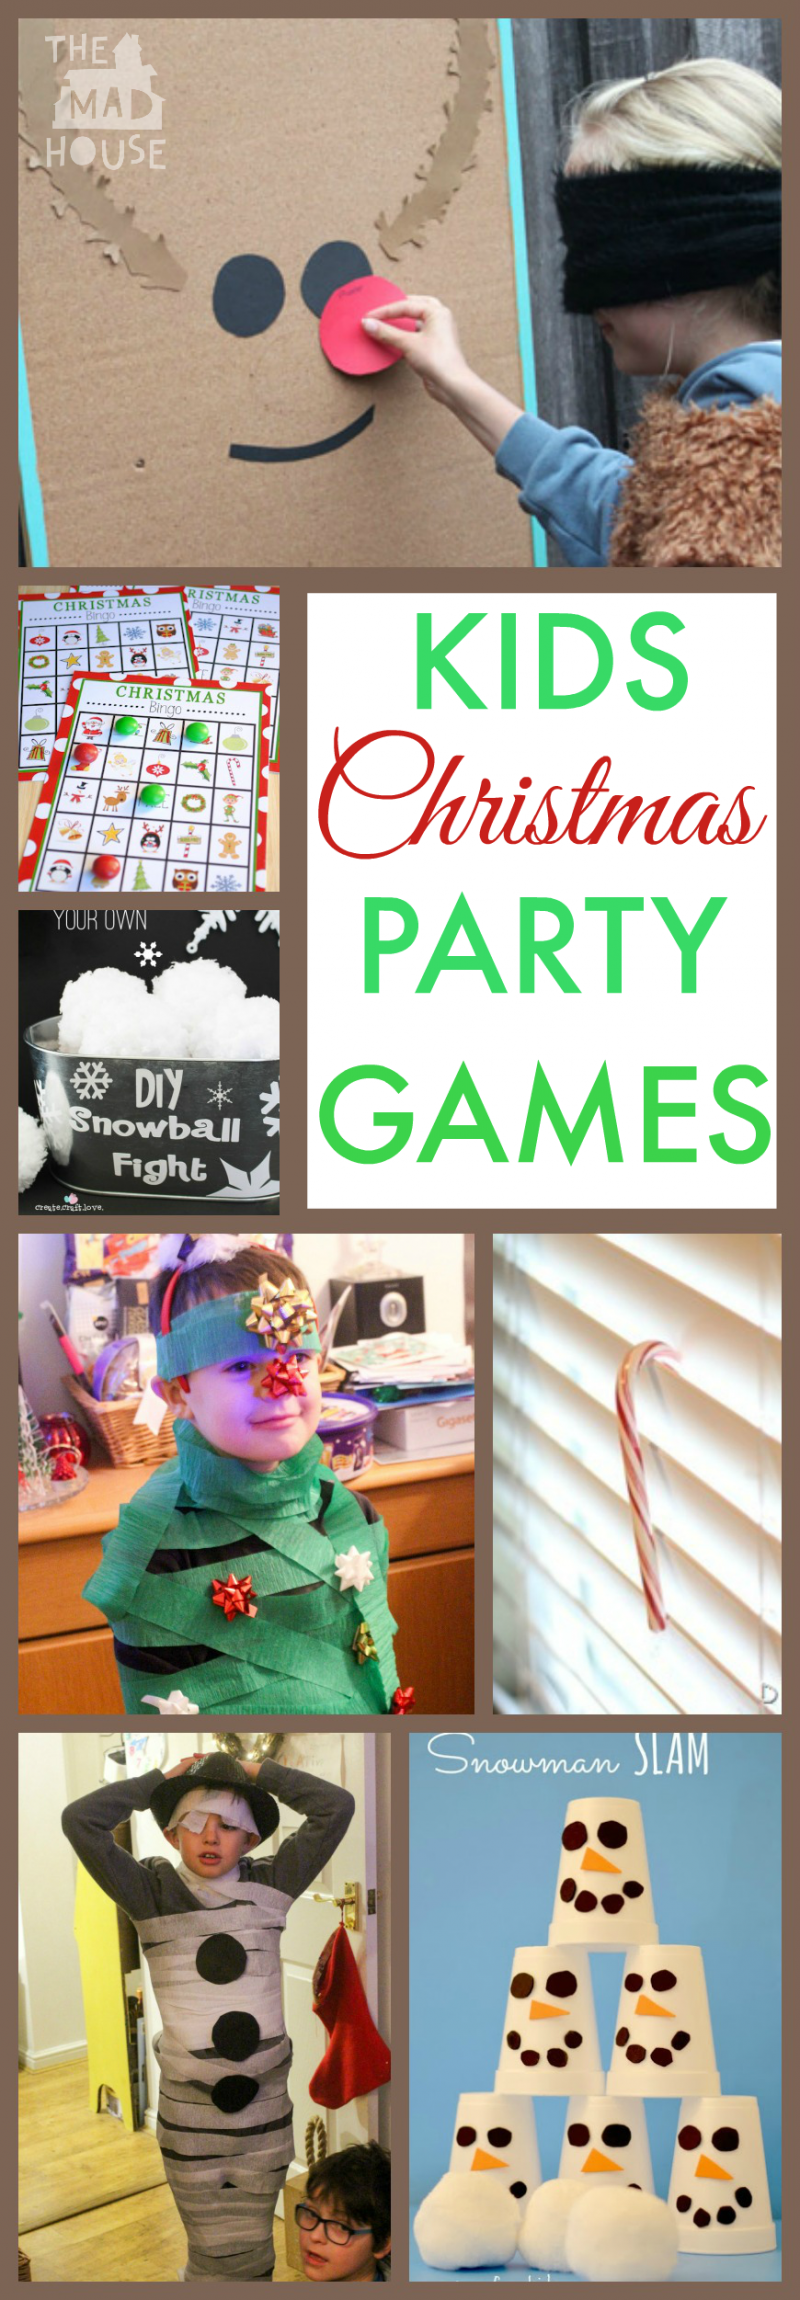 Christmas Party Activity Ideas Part - 31: 10 Fun Kids Christmas Party Games - Mum In The Madhouse